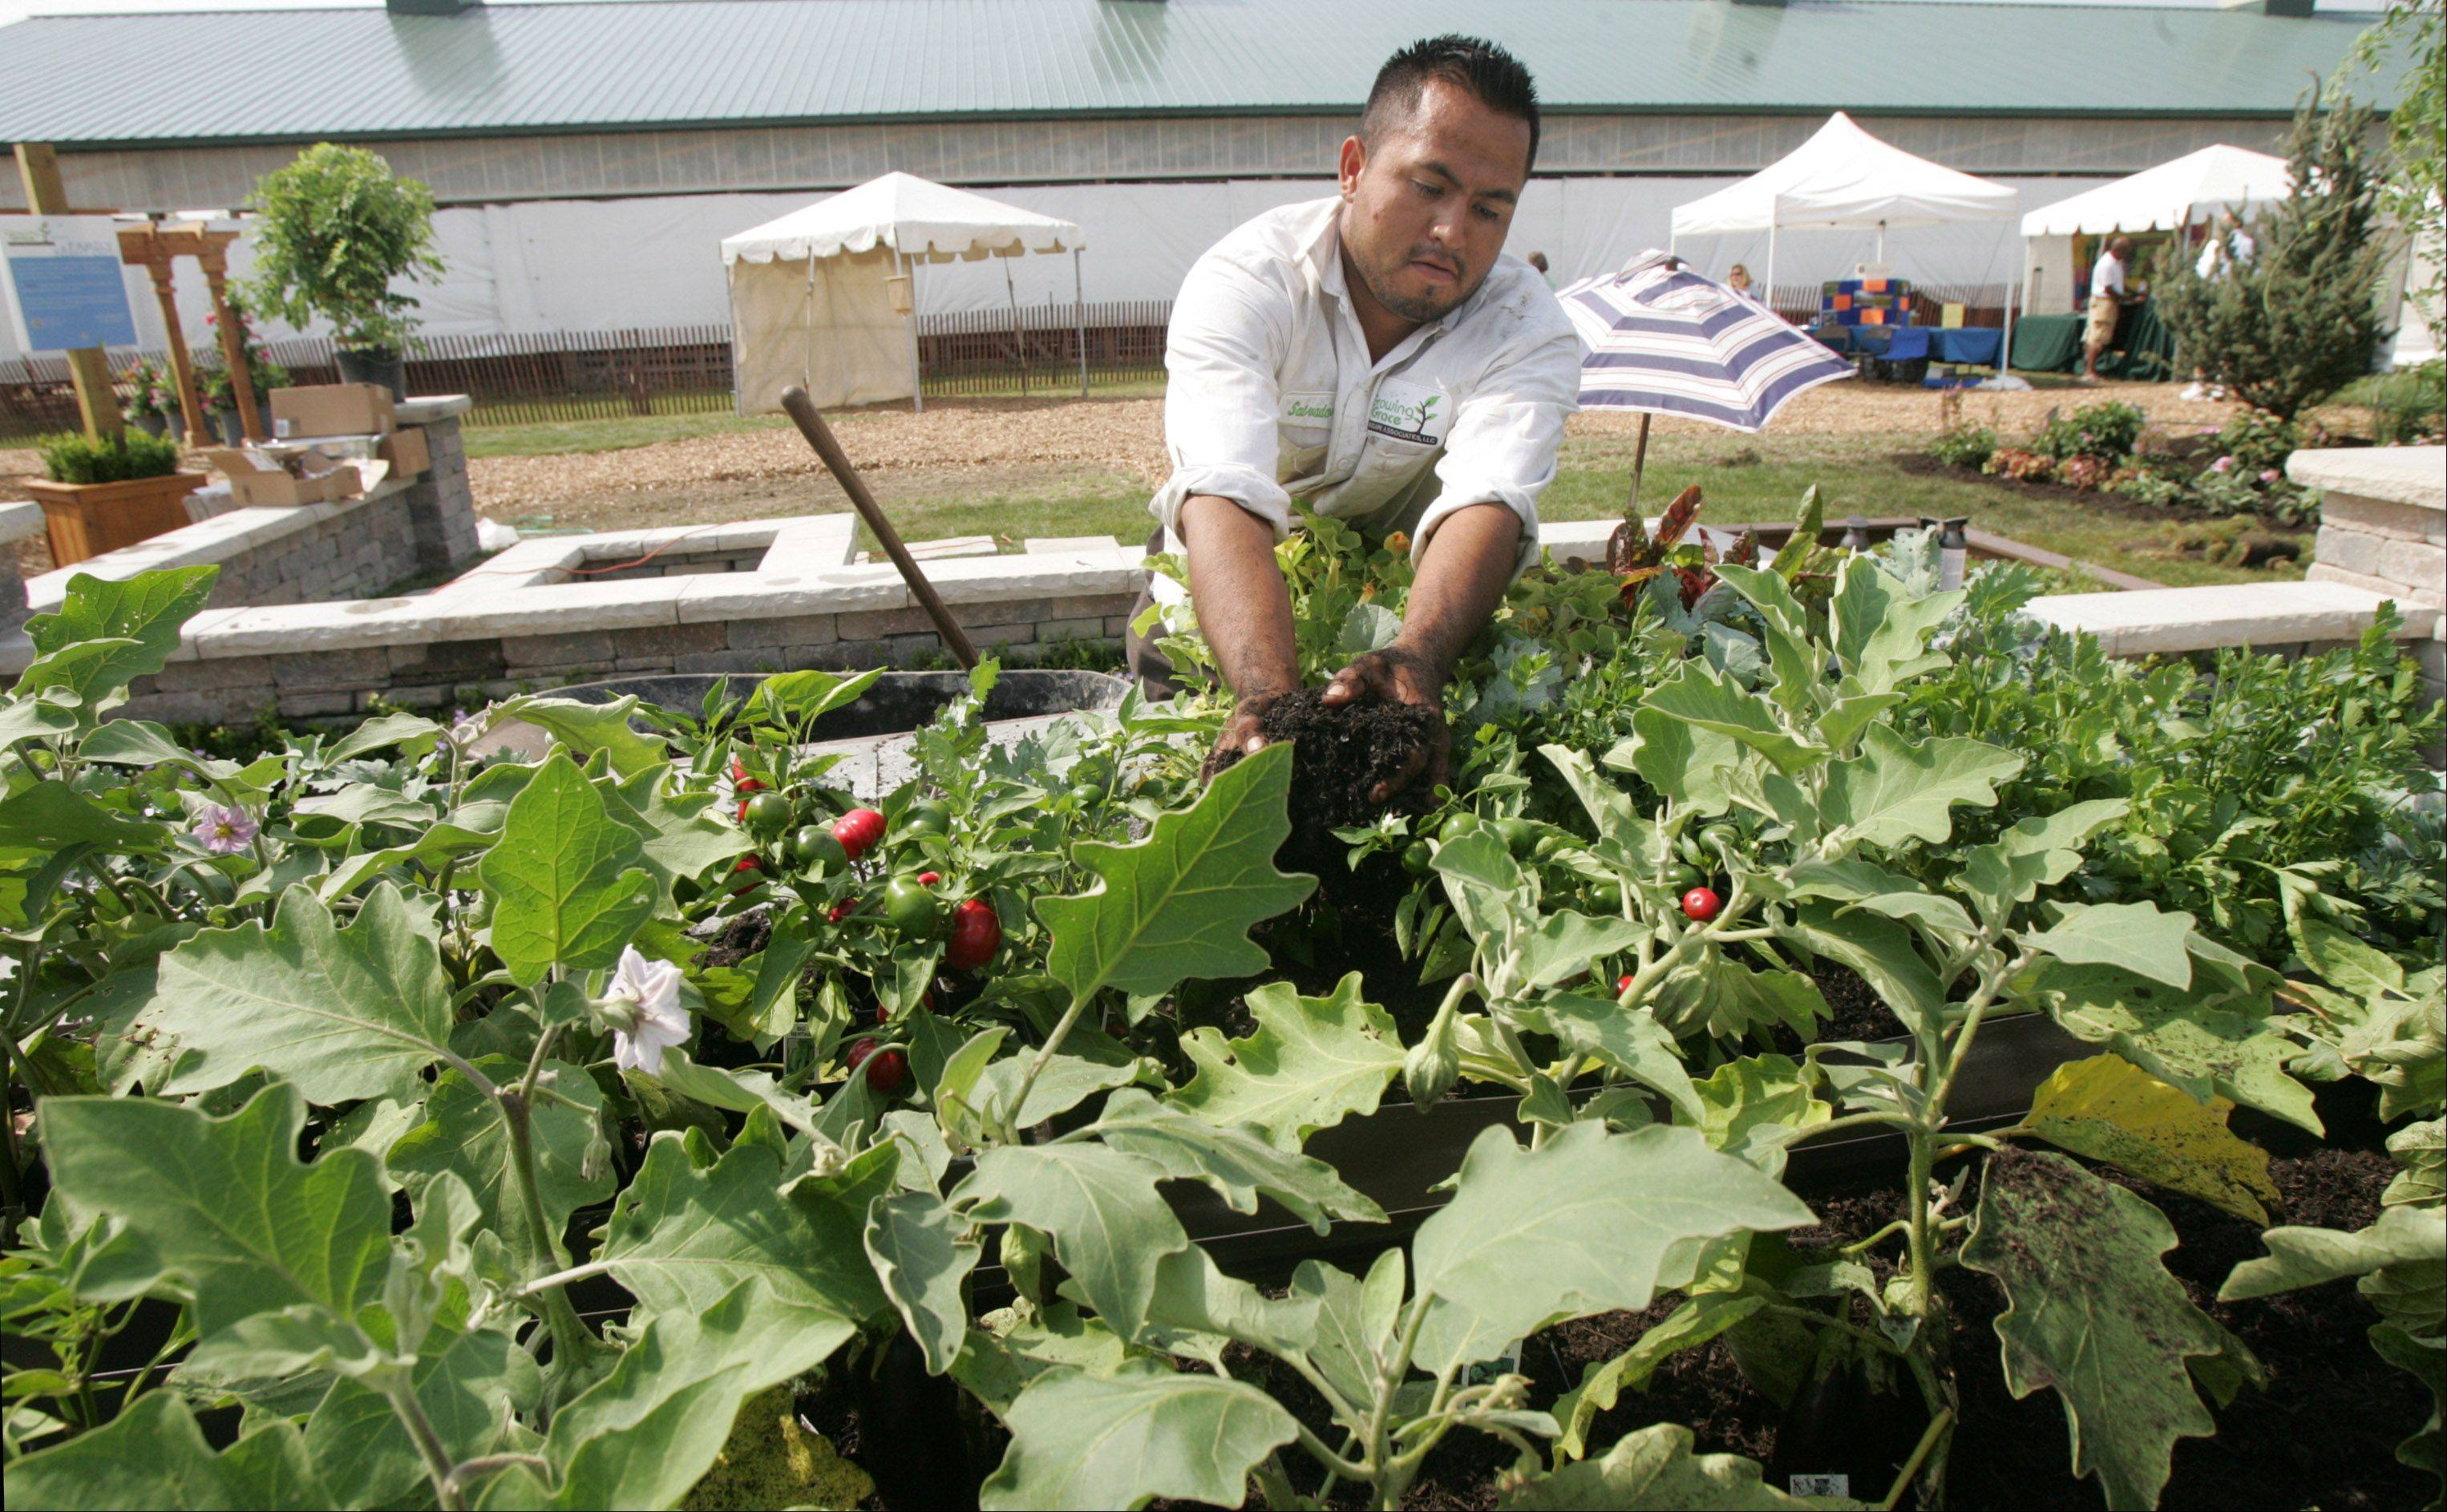 Salvador Mateos spreads mulch around a vegetable garden Wednesday at the Growing Grace Landscape Association exhibit at the Chicago Flower & Garden Show at the Lake County Fair. The show offers variations on outdoor gardens created by area landscape designers.